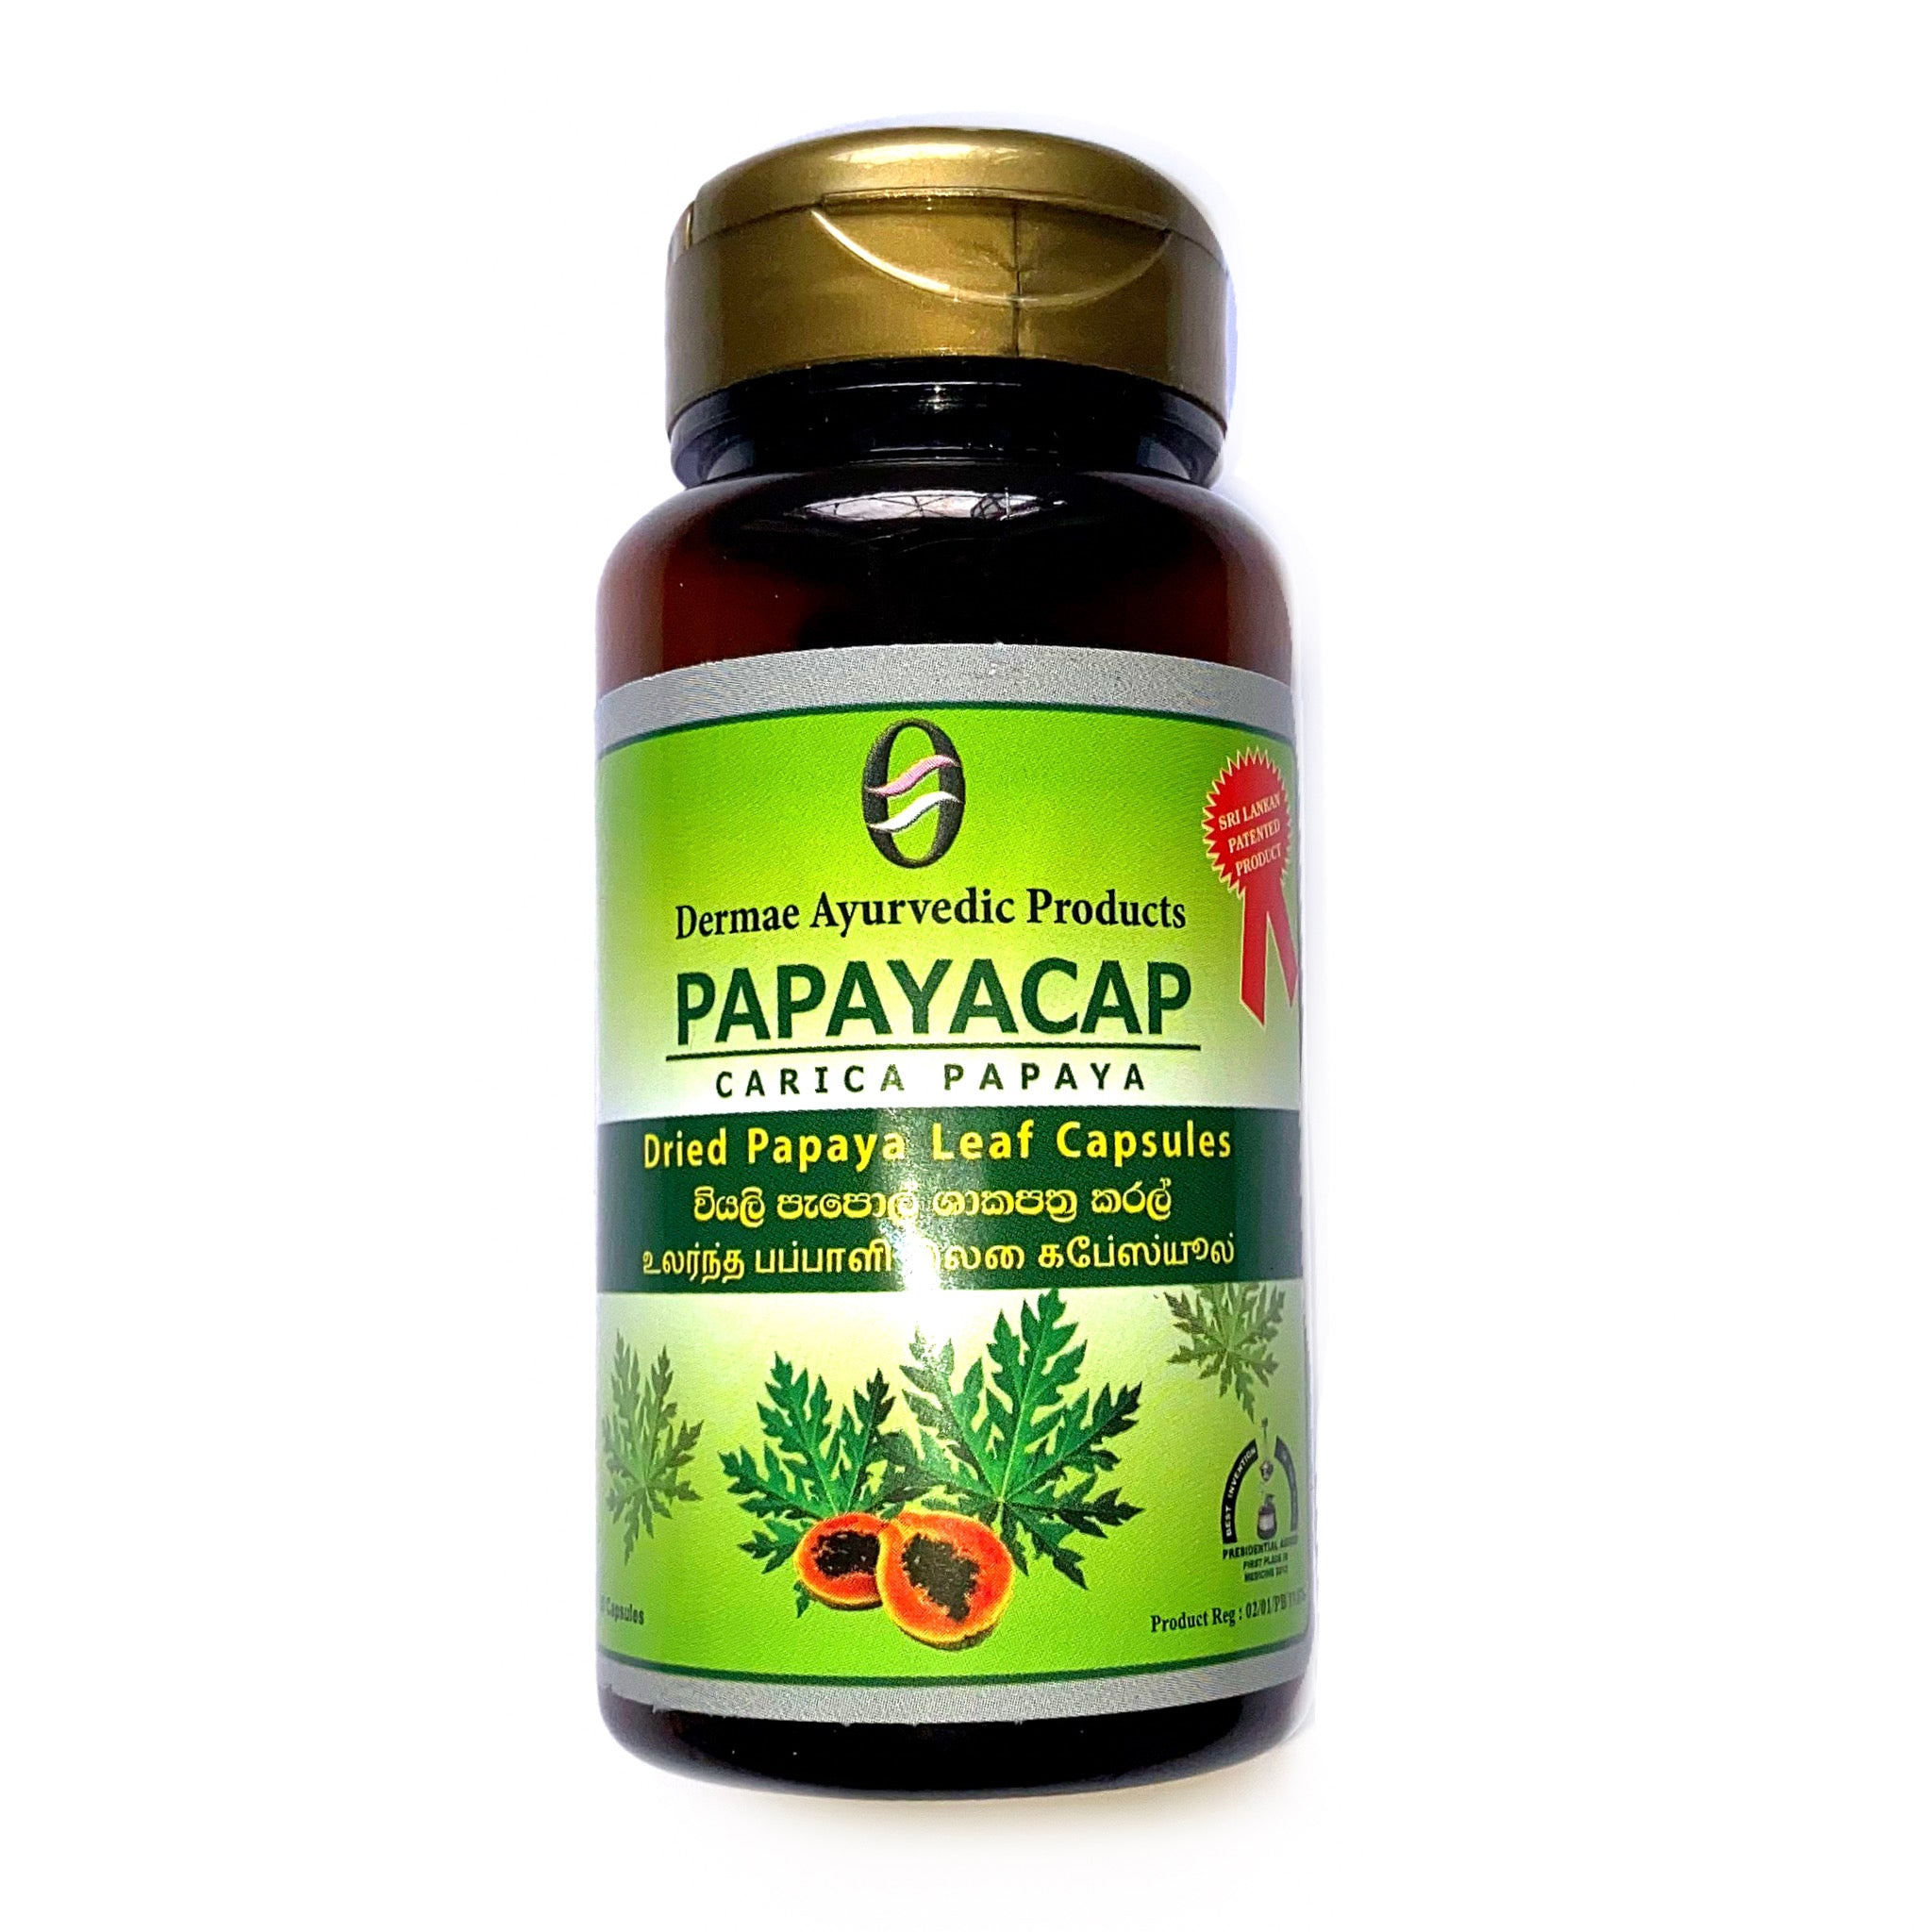 PAPAYA CAP (Papaya Capsule)